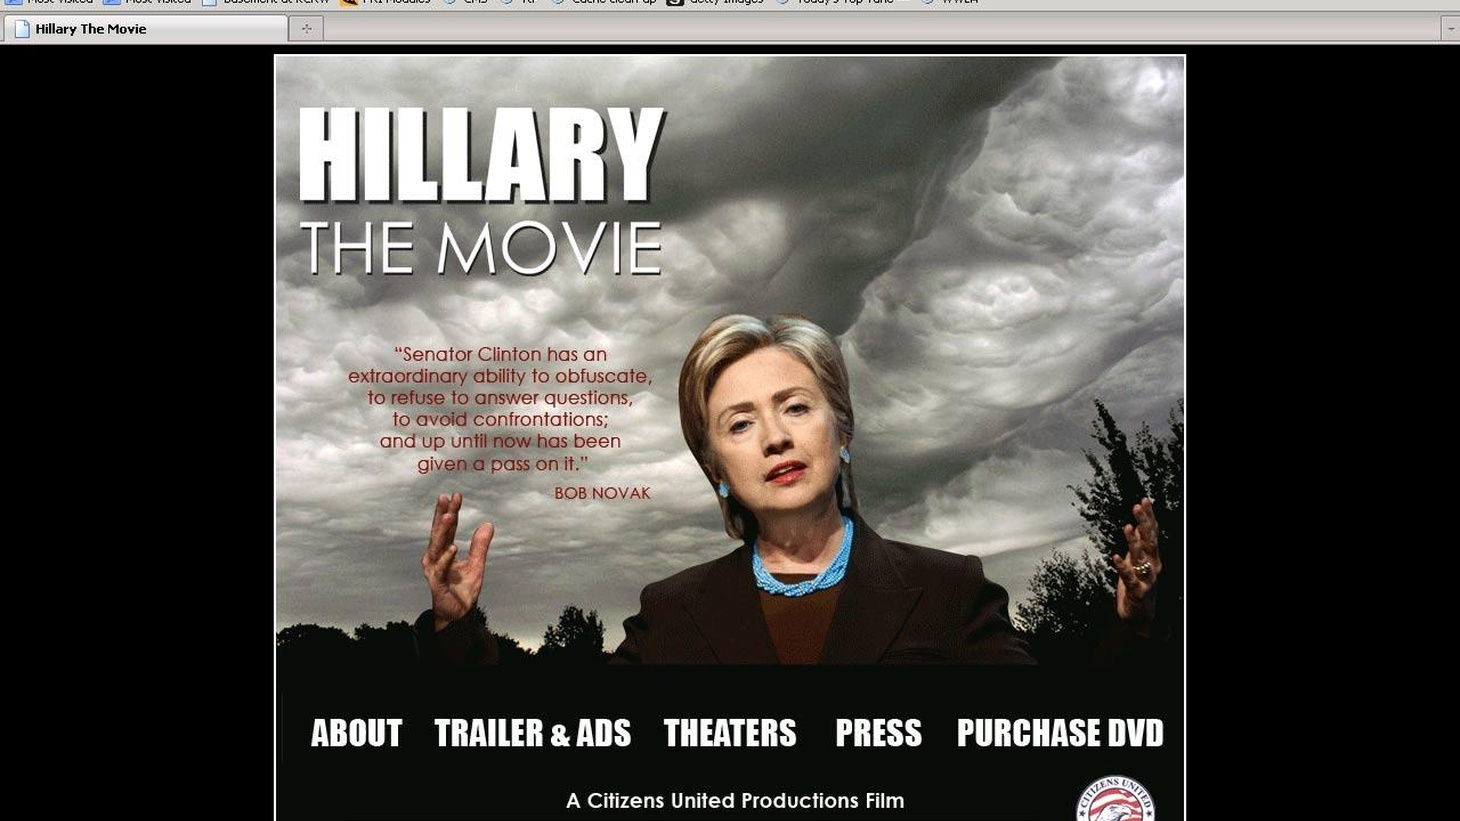 An attack film called Hillary: The Movie is at the heart of a case that could change the way political campaigns have been financed for more than 100 years. We hear about today's extraordinary session of the US Supreme Court, the first for the new Justice Sonia Sotomayor. Also, the capture of a New York Times Reporter illustrates the escalating danger in Afghanistan. On Reporter's Notebook, can the US afford human exploration in space?